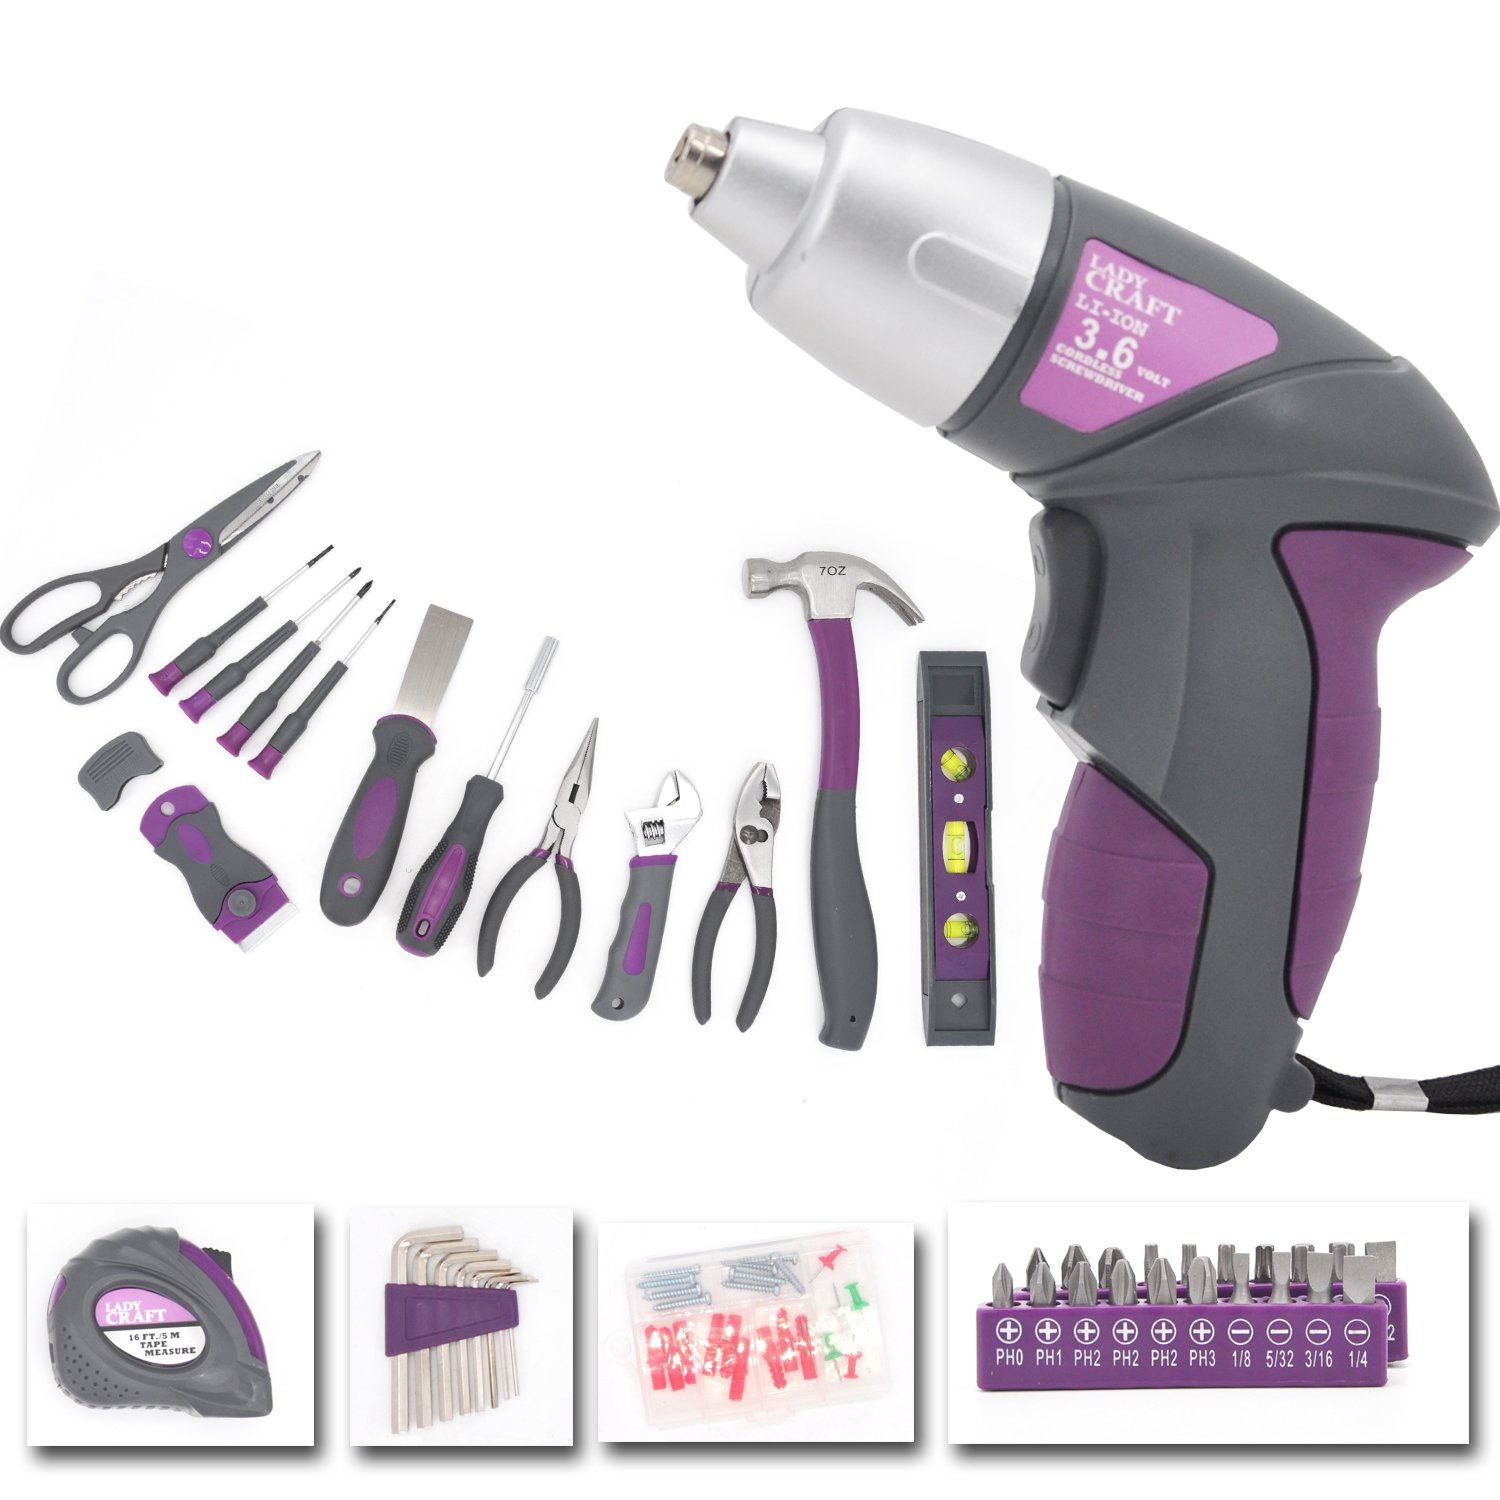 Lady Craft 44-Piece Home Repair Tool Kit with Ergonomic Handles, Mauve Li-ion Screwdriver